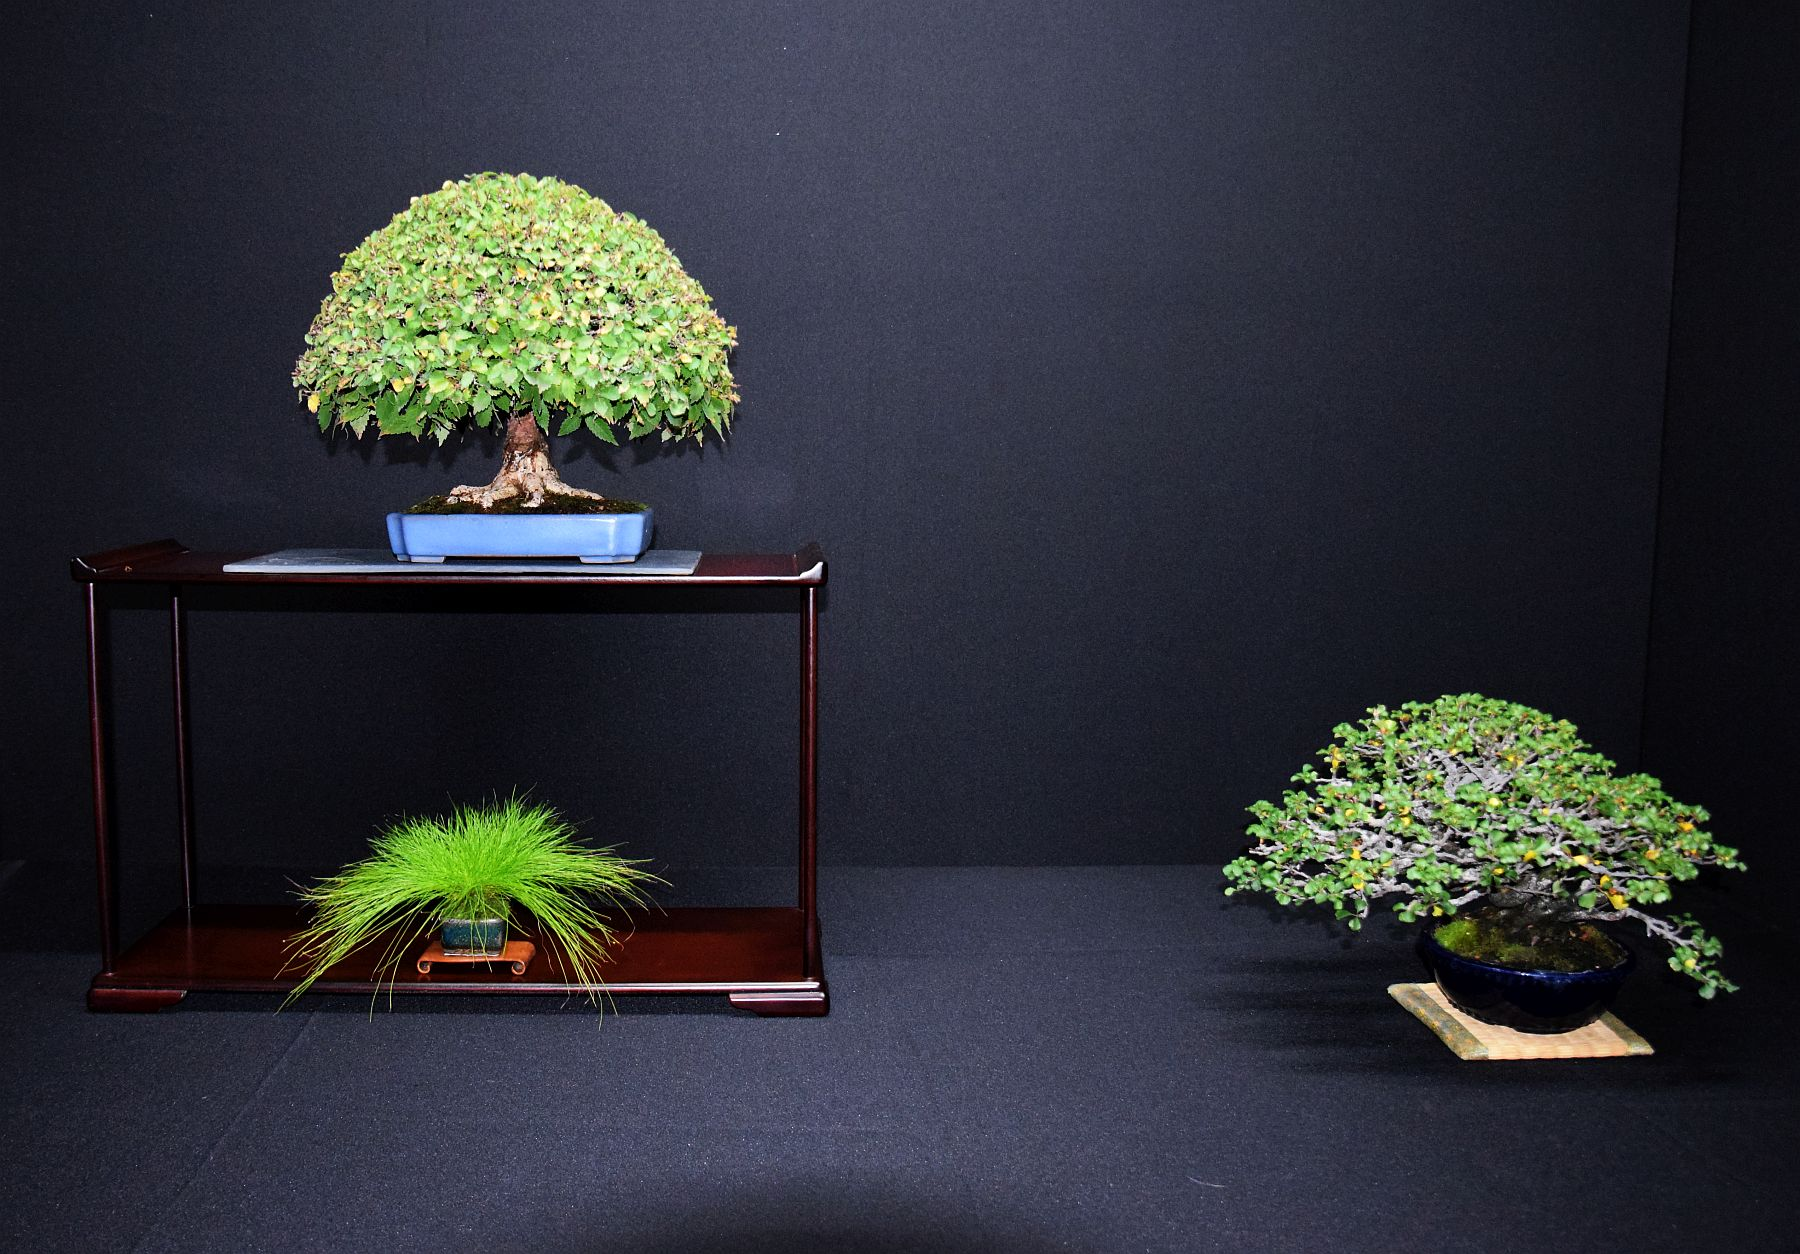 bonsai-museum-luis-vallejo-012